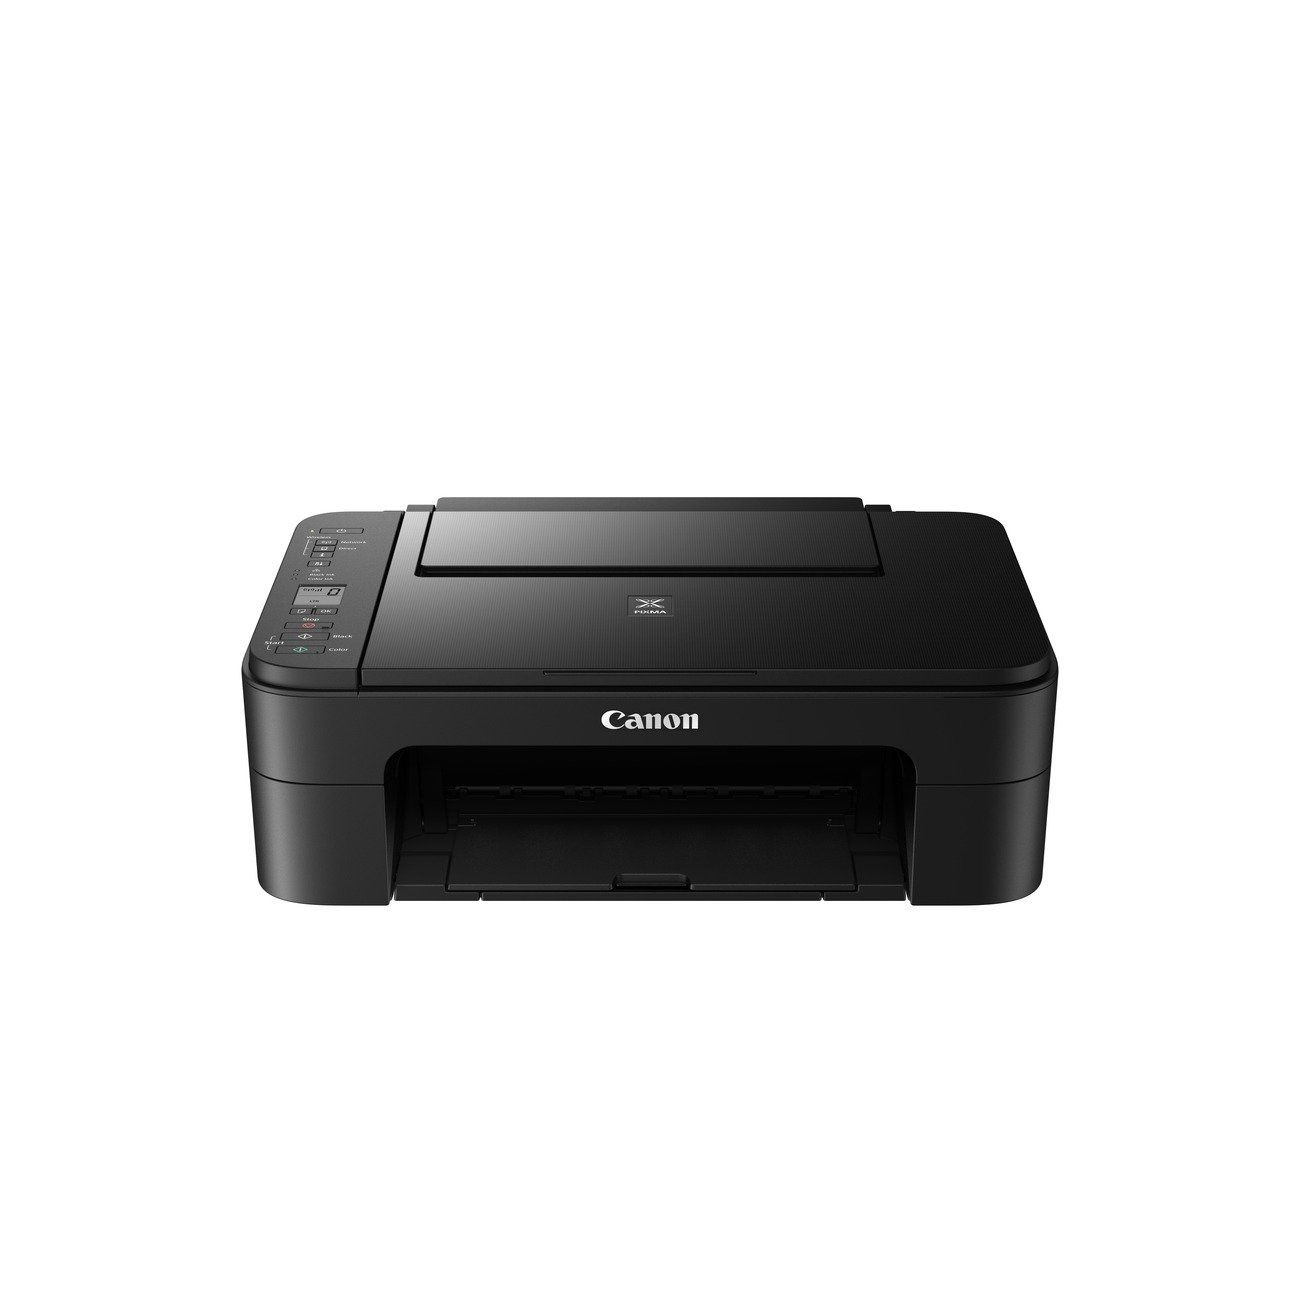 Canon Pixma TS3150 Multifunktionsdrucker